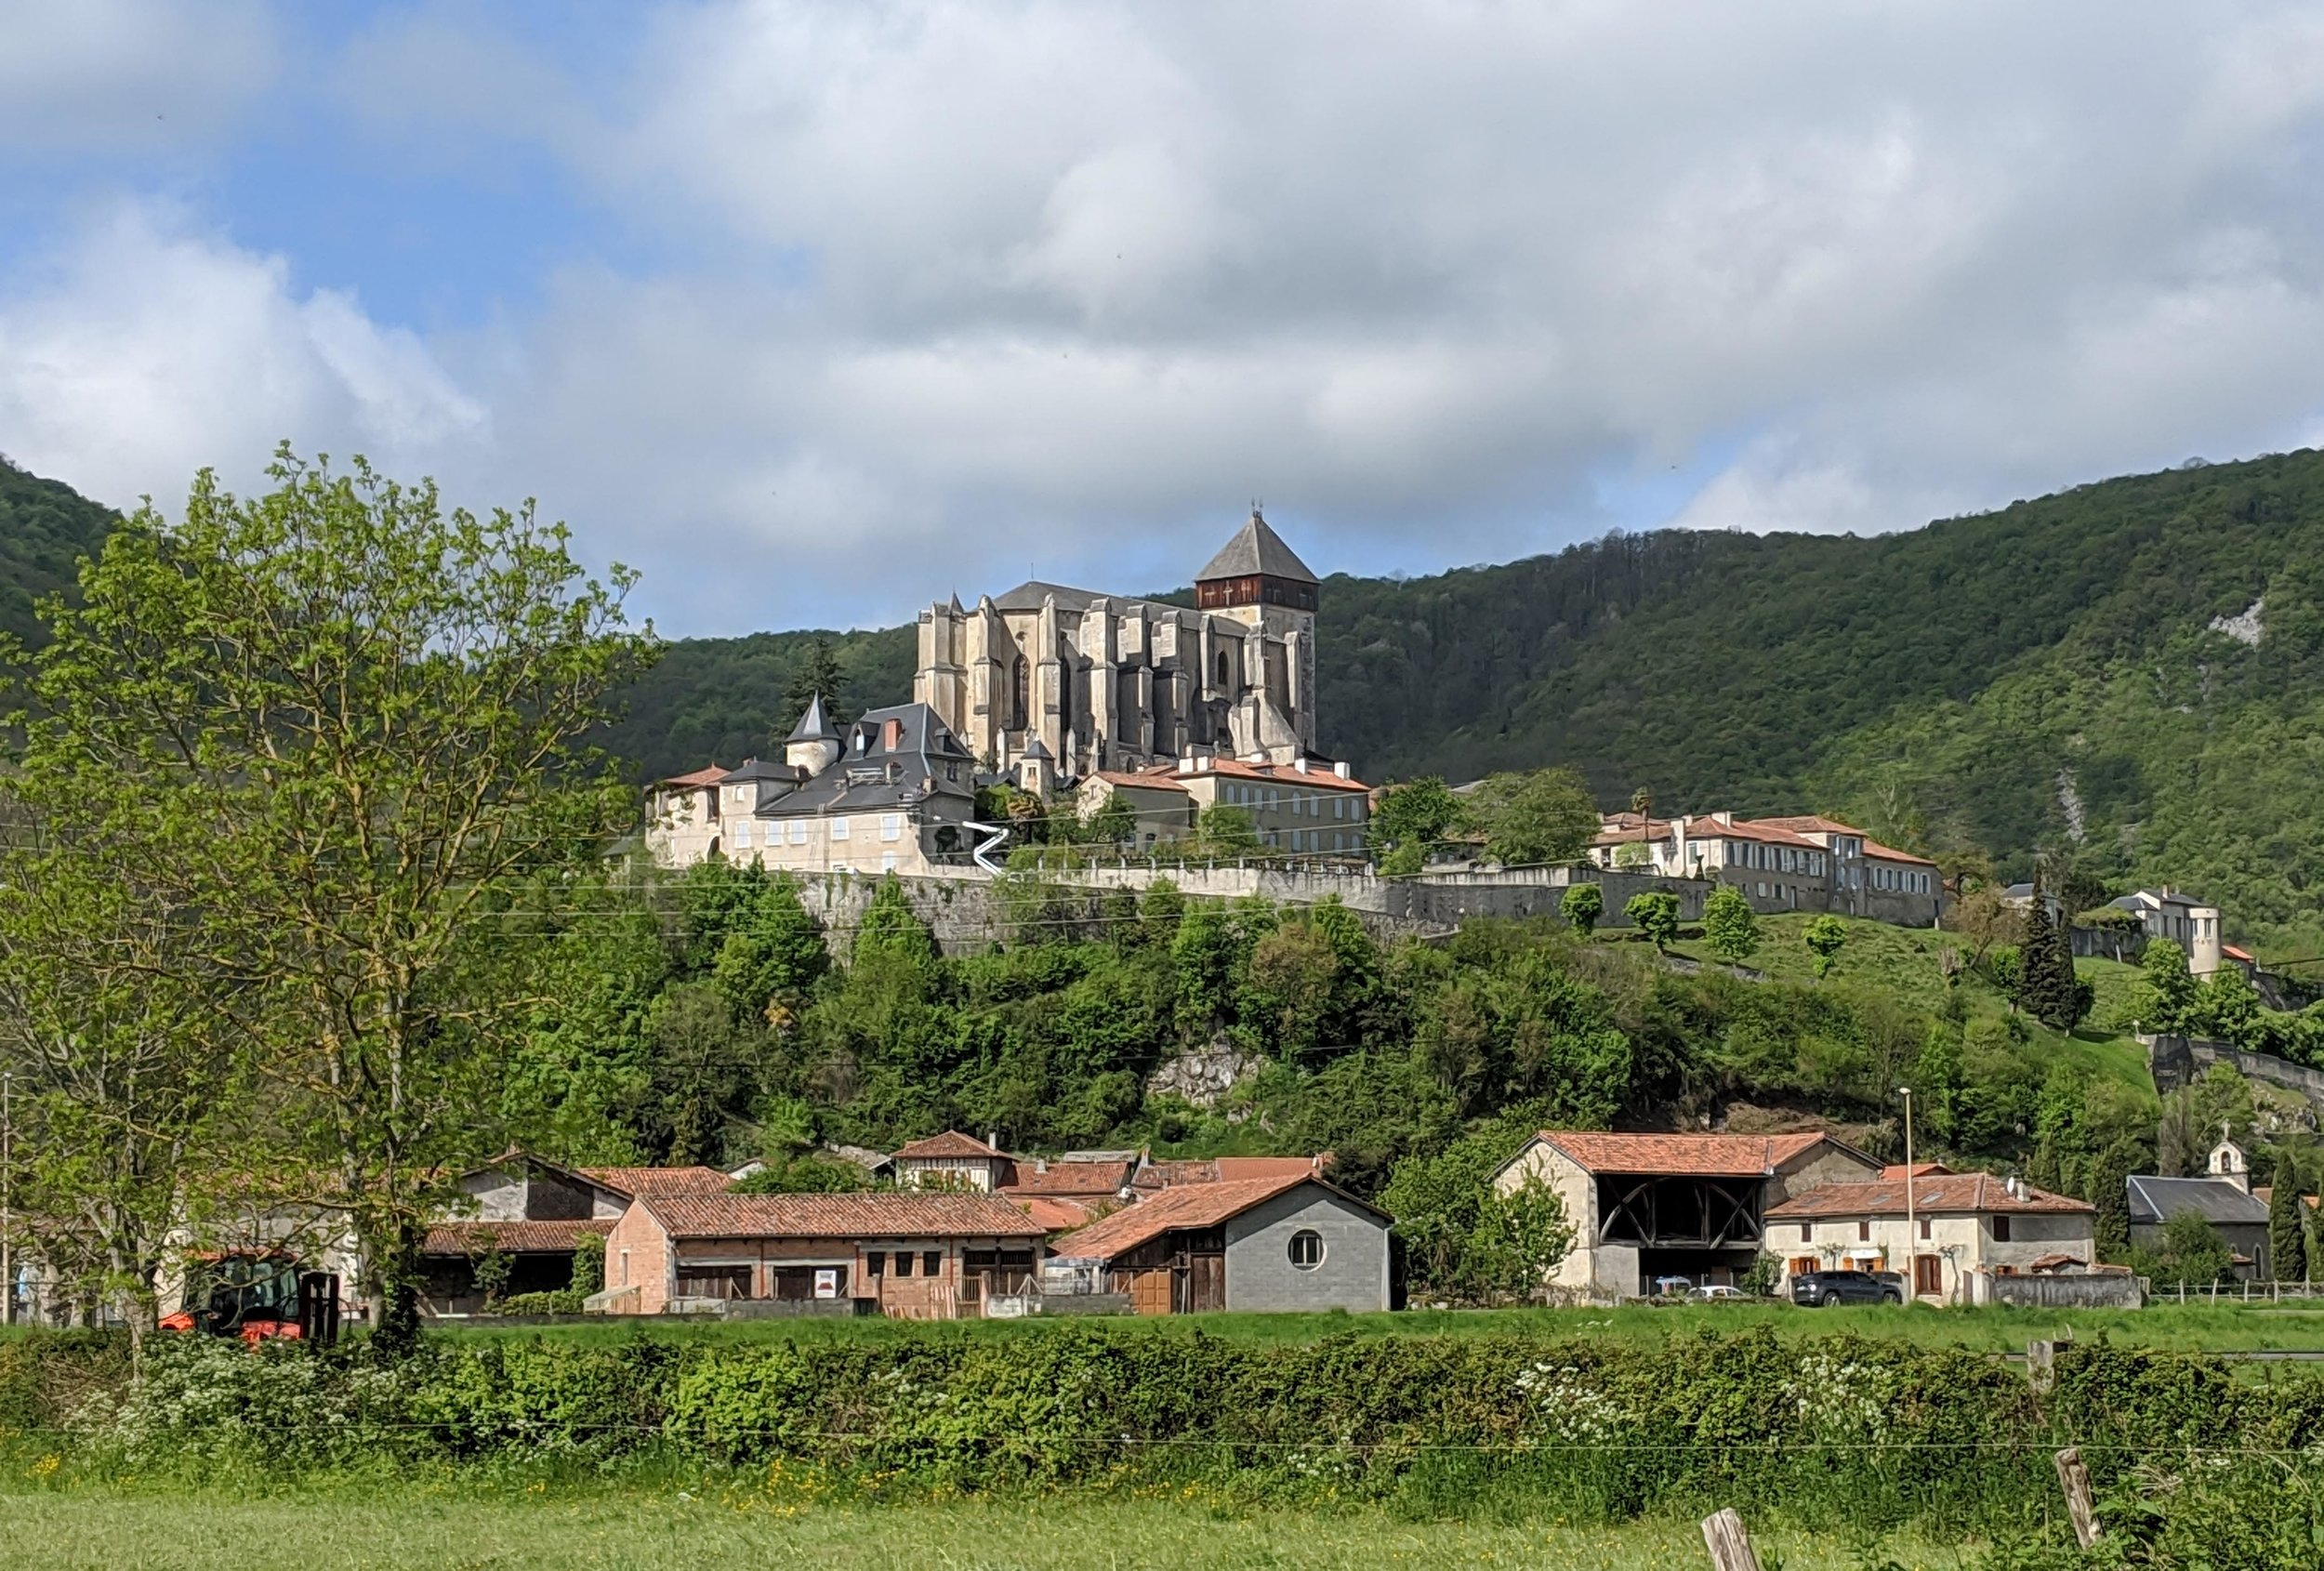 View of St Bertrand de Comminges from our campsite